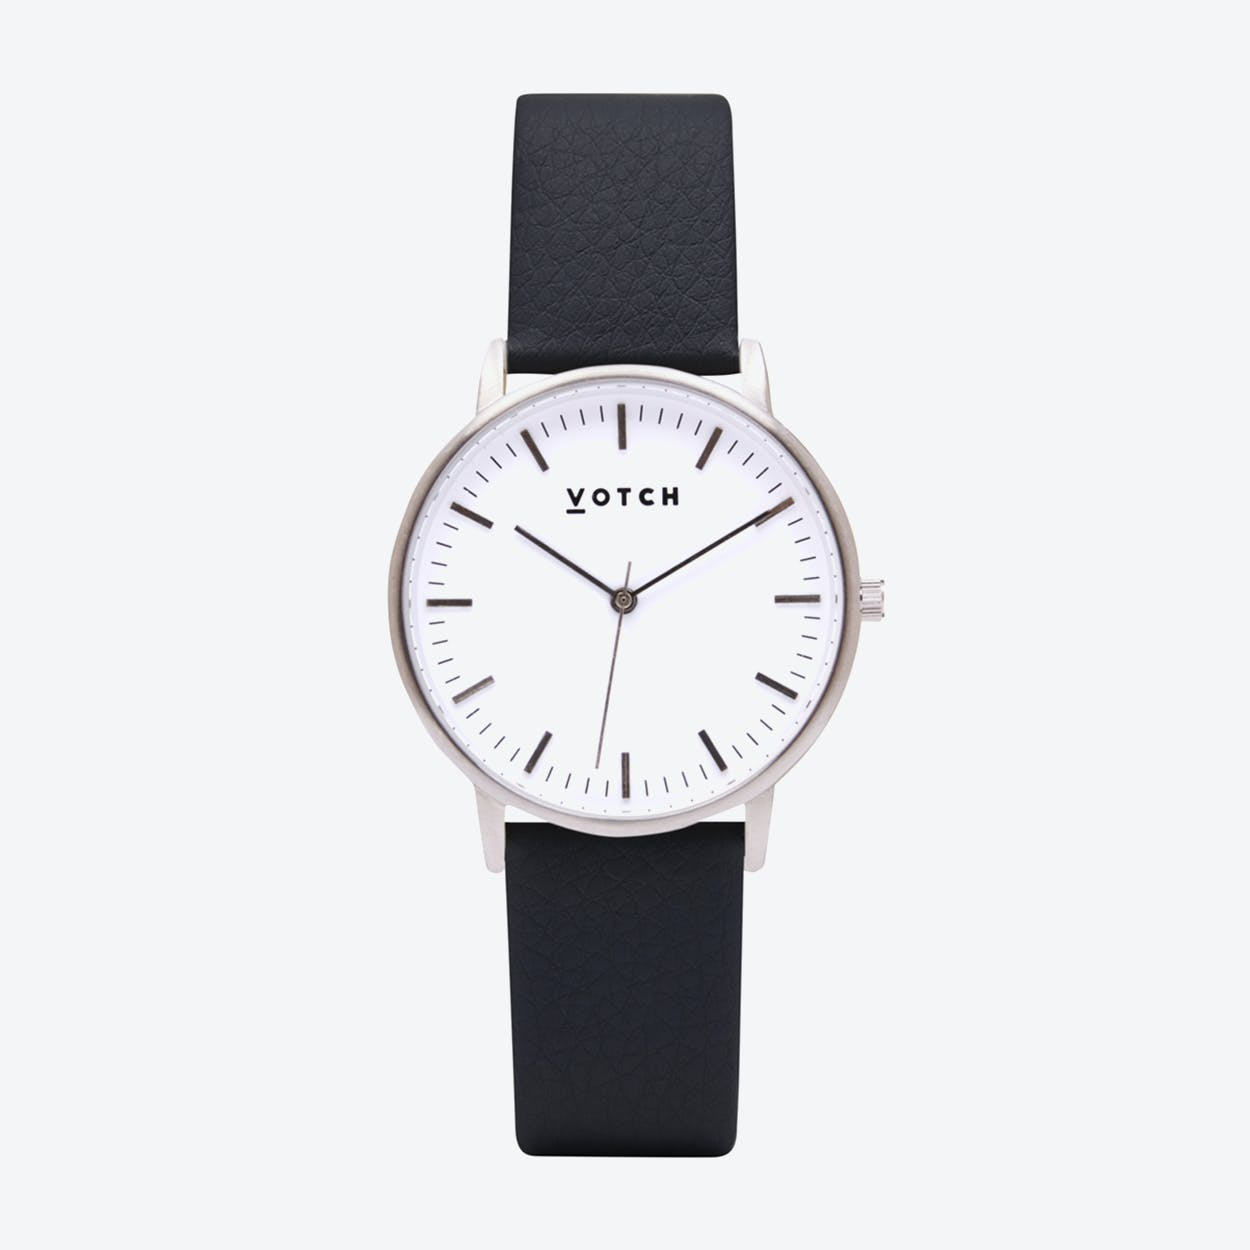 Intense Classic Watch in Silver with White Face and Black Vegan Leather Strap, 36mm